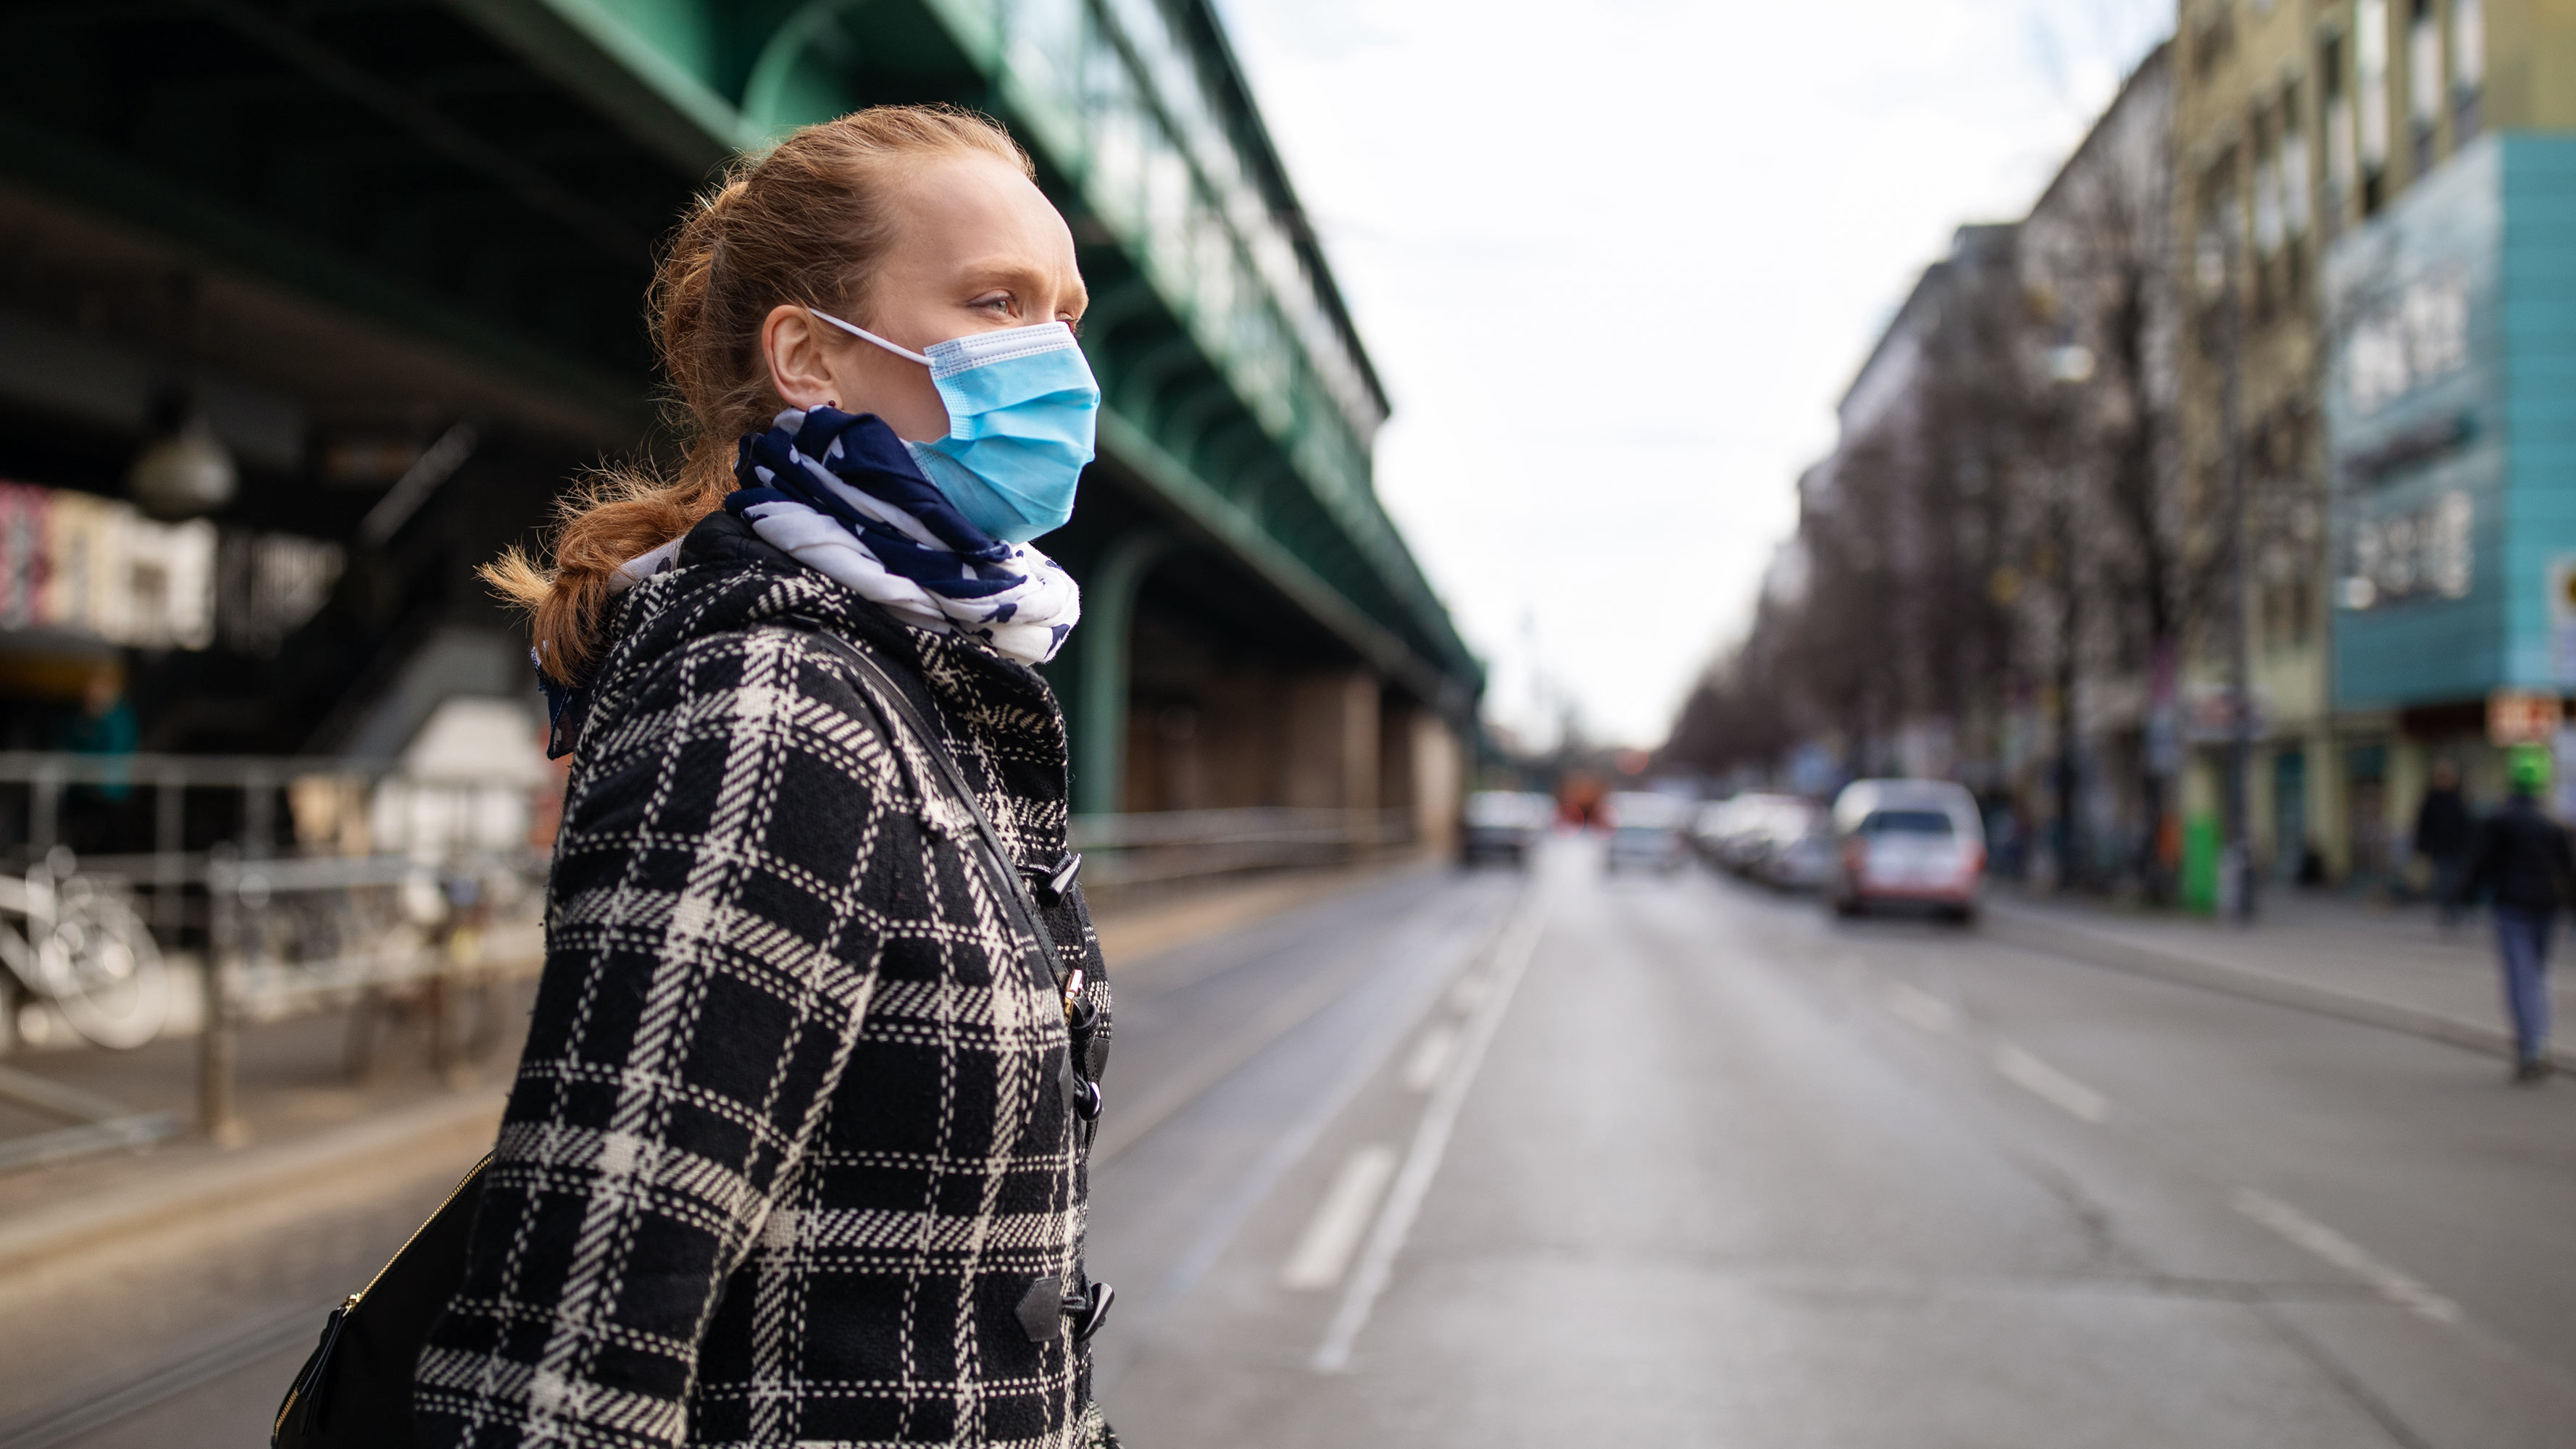 A woman, wearing a face mask, walks across a city street during her commute.